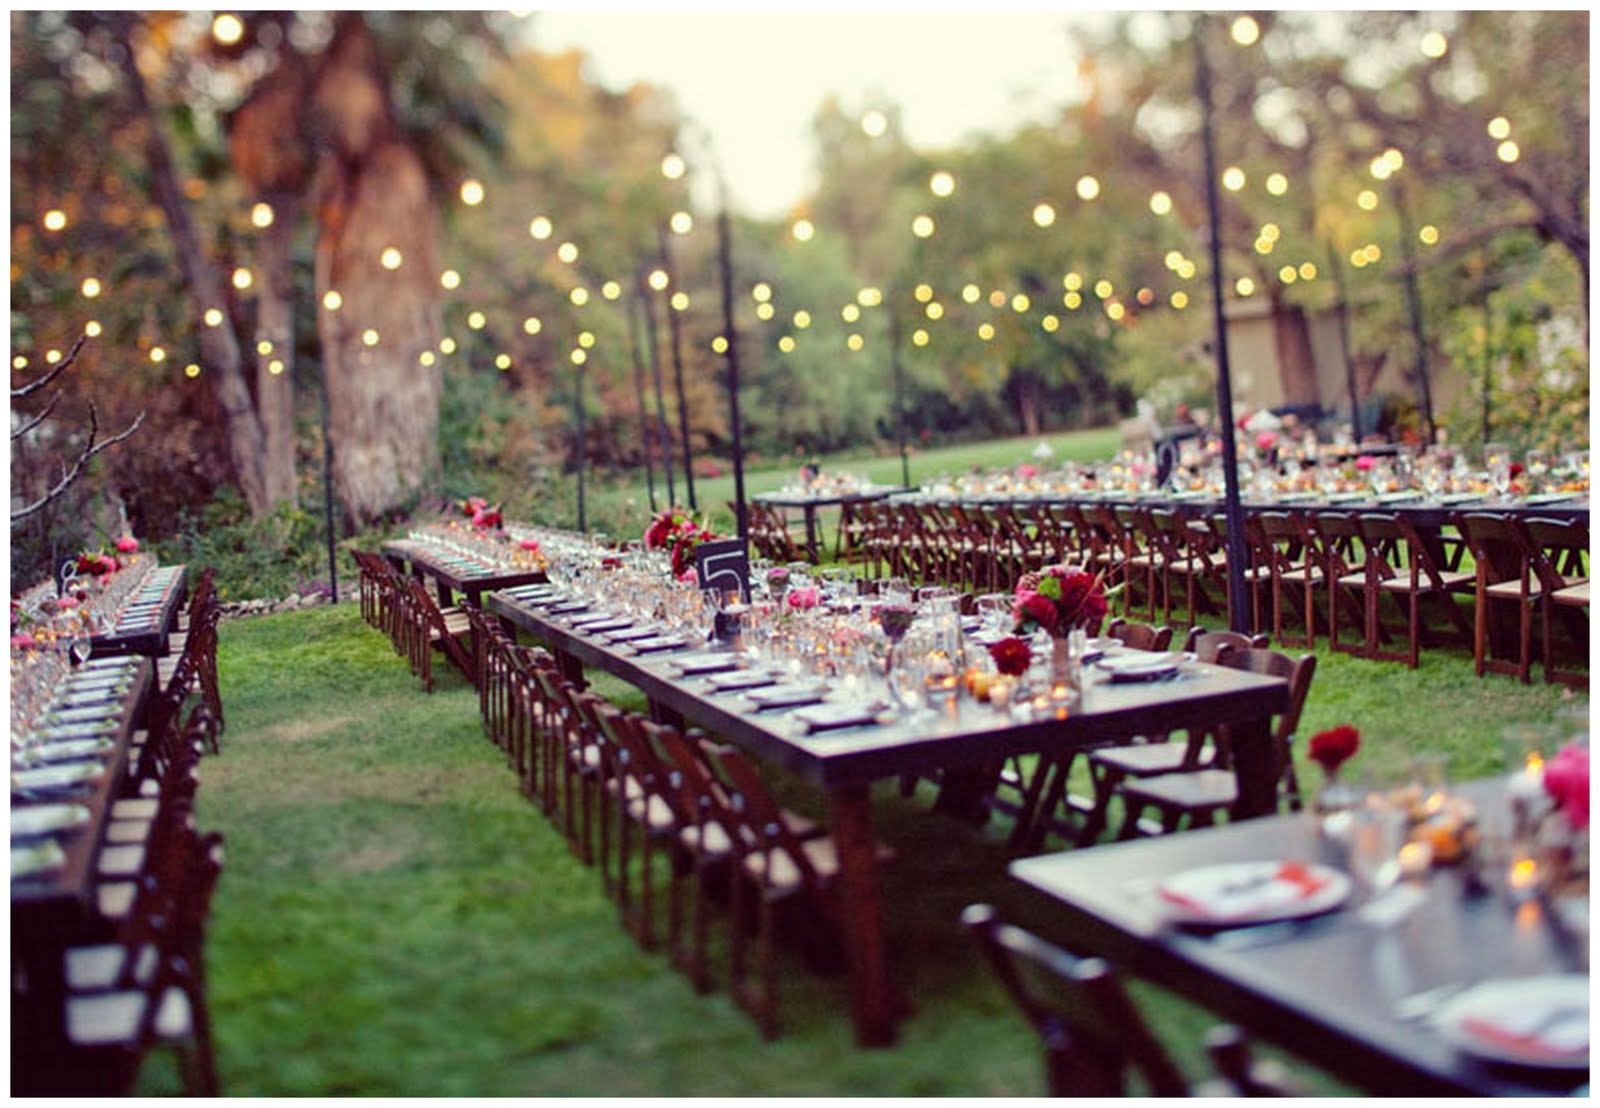 Real enchanted garden wedding kelly steve for Backyard engagement party decoration ideas